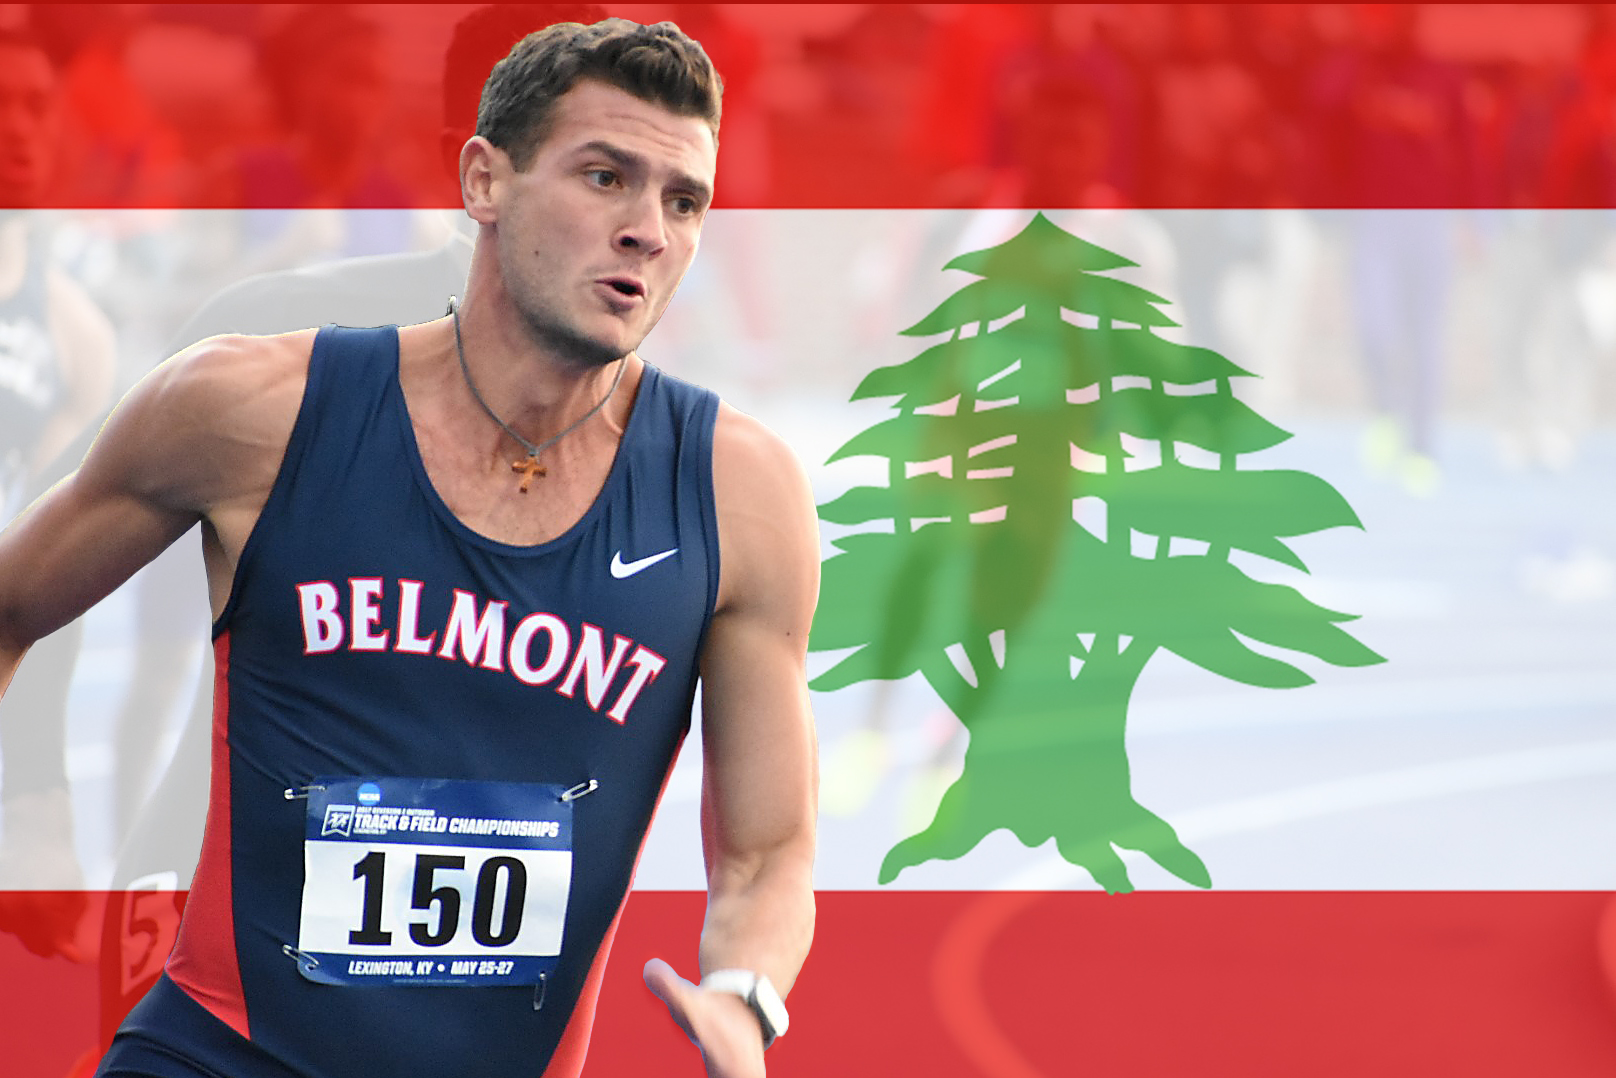 Nammour to run for Lebanon